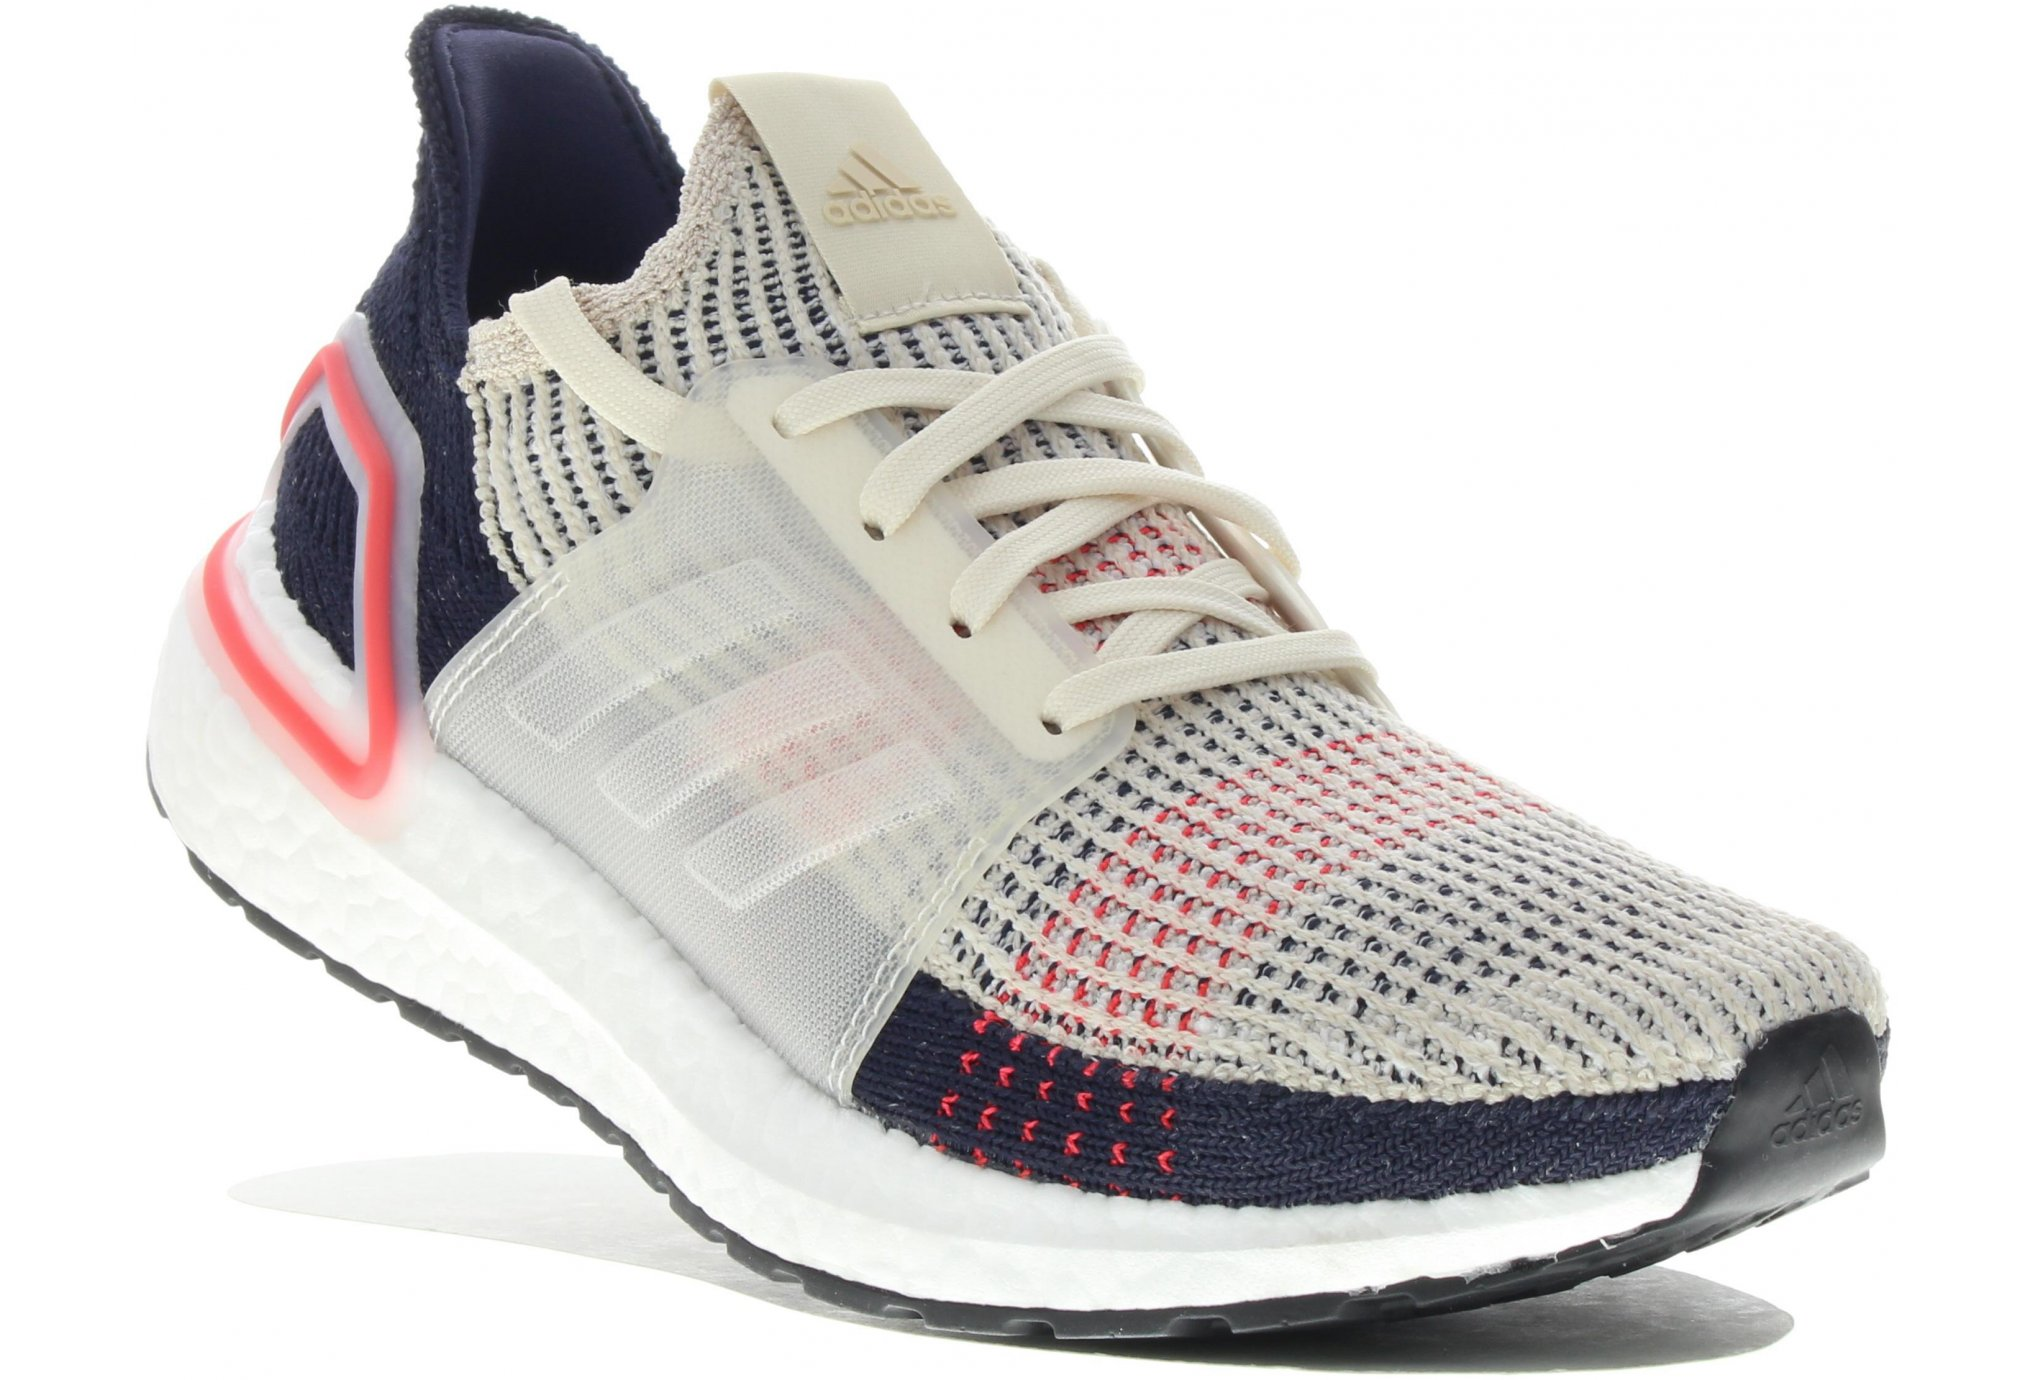 adidas UltraBOOST 19 Recode déstockage running